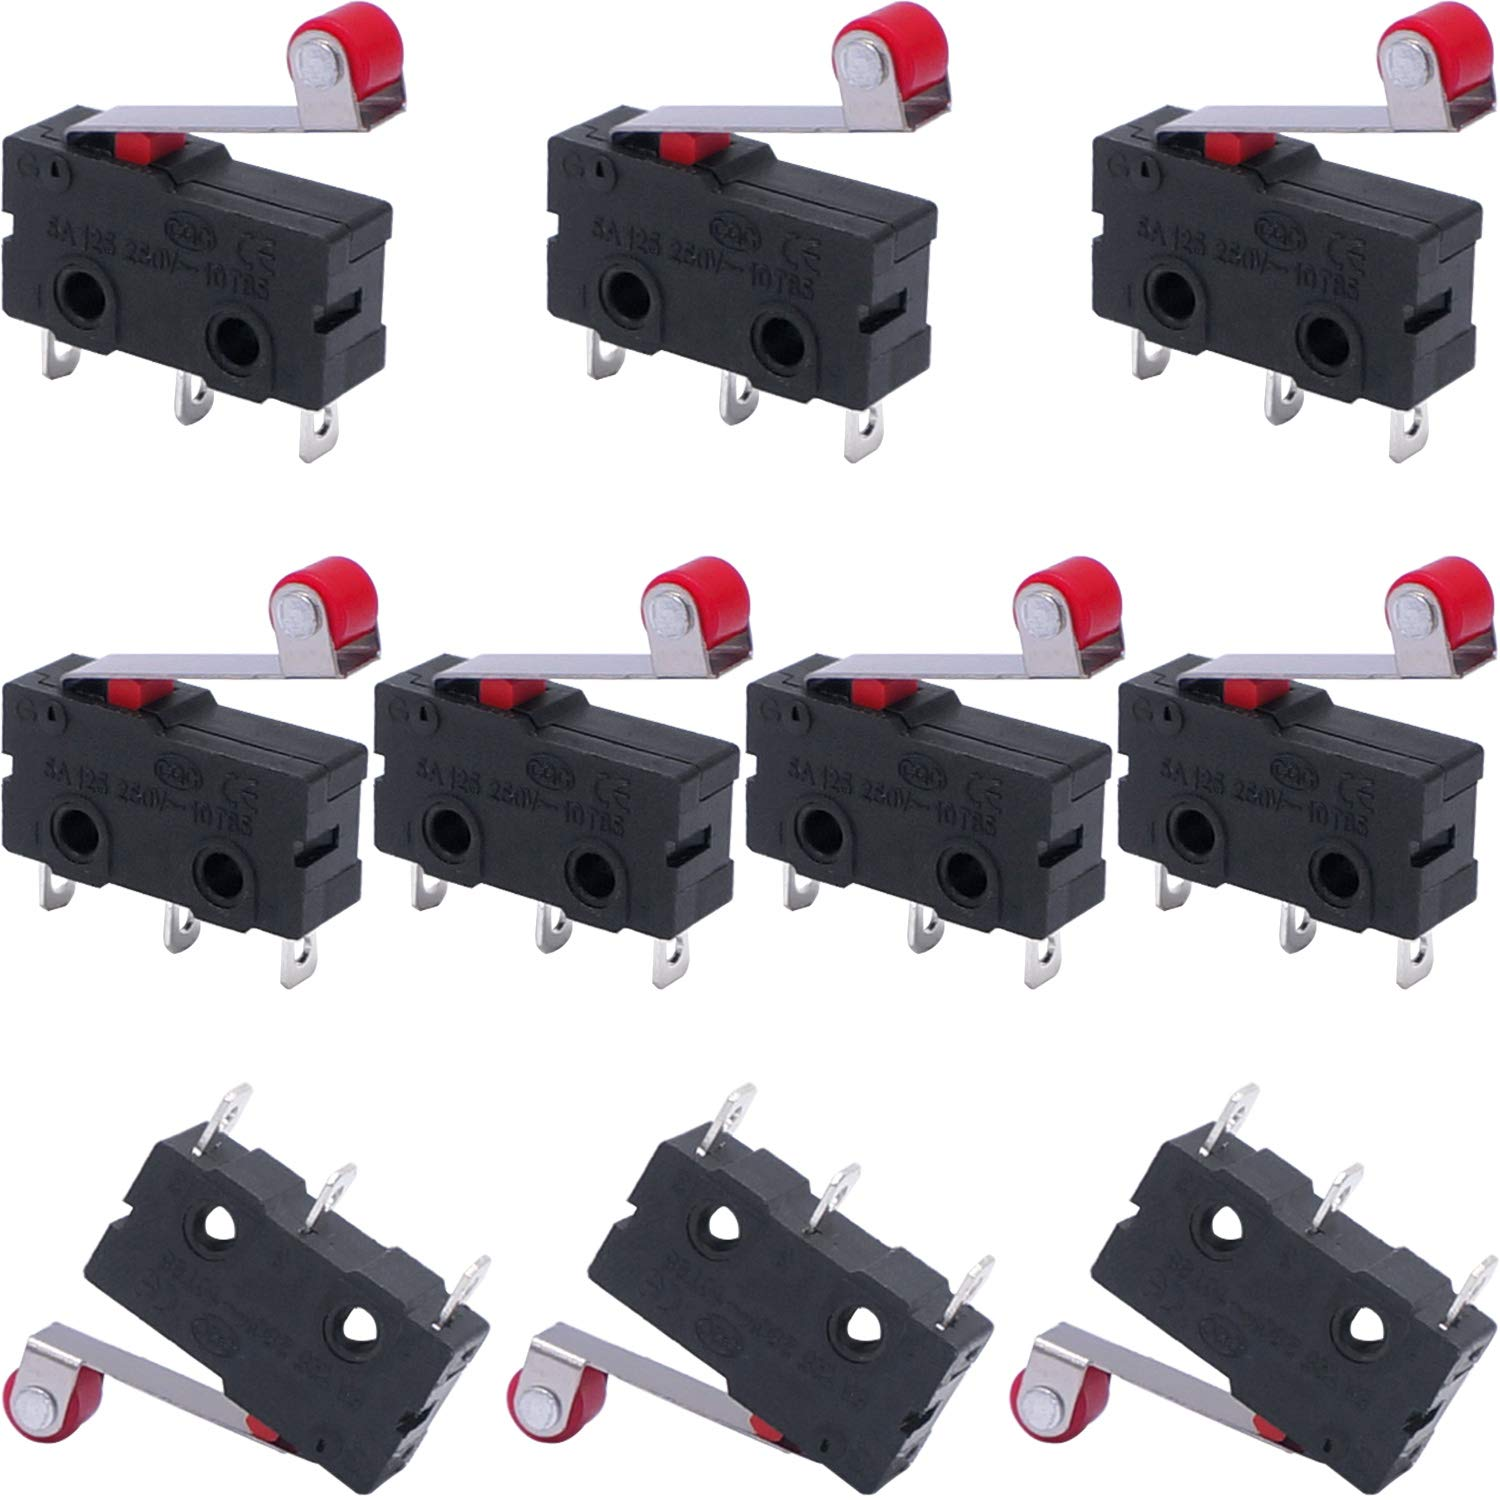 Taiss 10pcs Momentary Roller Special Campaign Lever Arm Now on sale 250 AC Micro Limit Switch